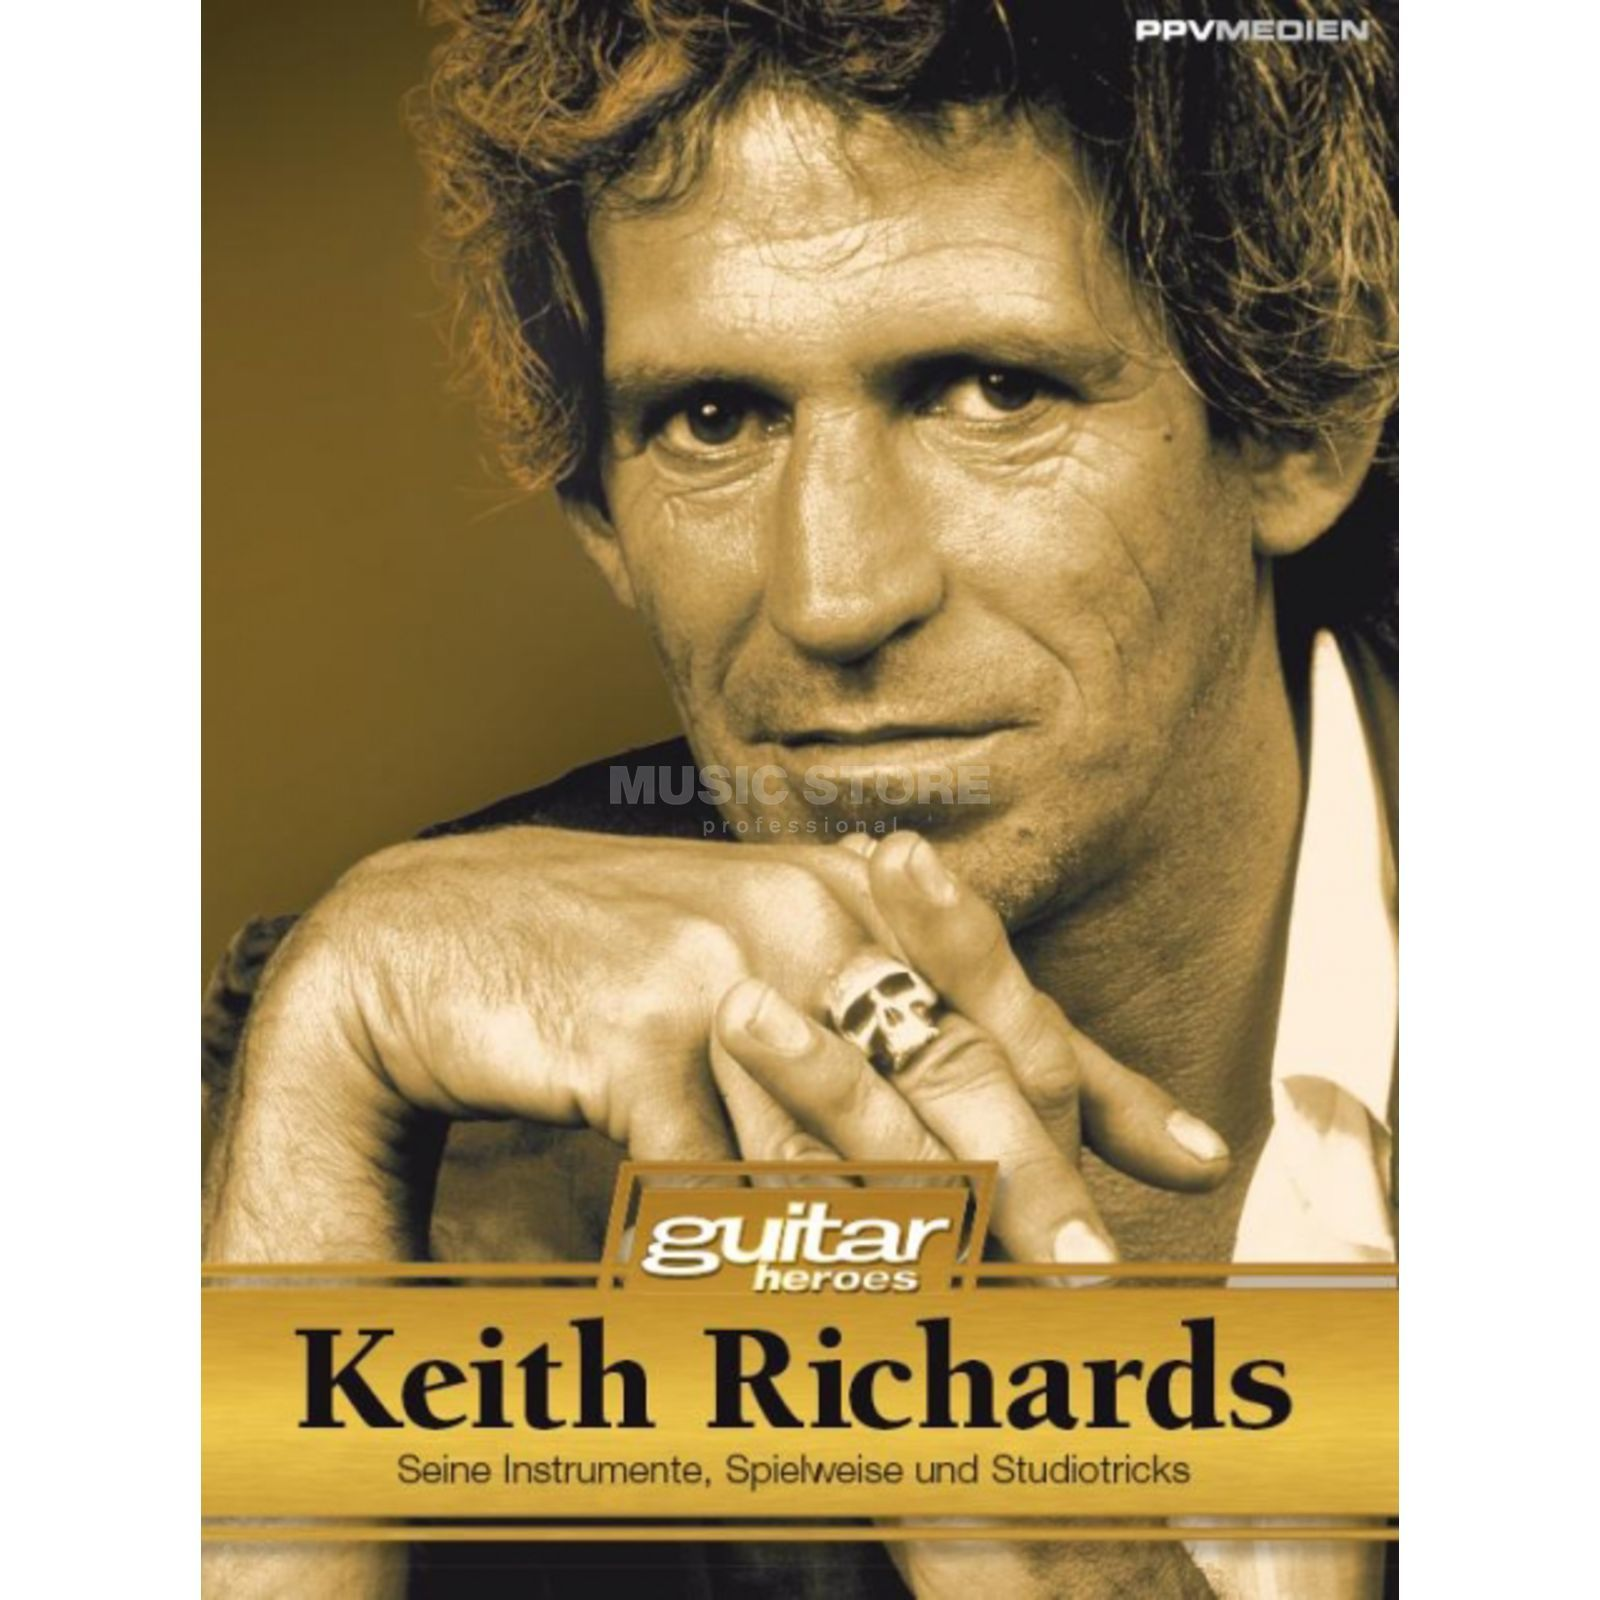 PPV Medien guitar heroes - Keith Richards Thieleke Produktbillede